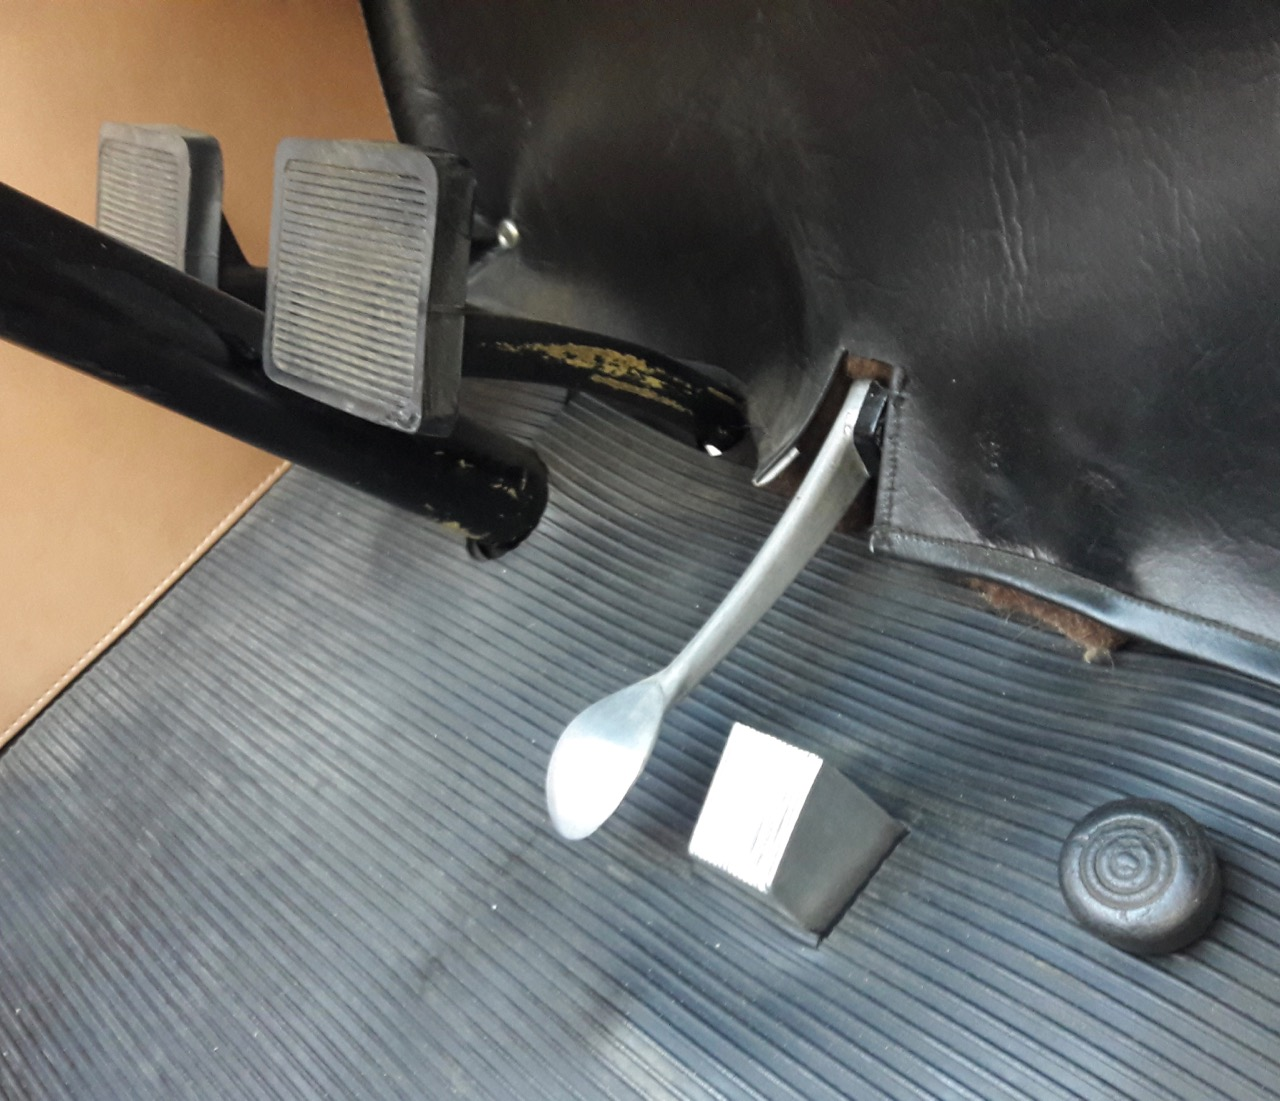 Clutch and brake pedals are separated by steering column